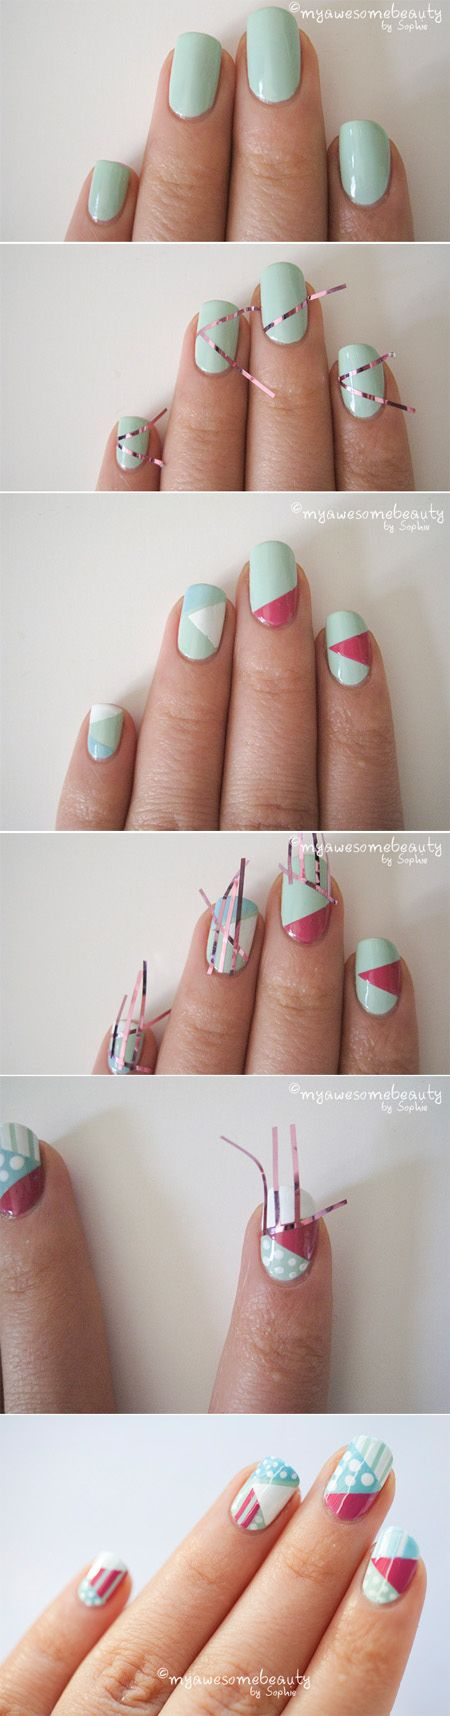 12 great DIY nail ideas! Geometric Nails